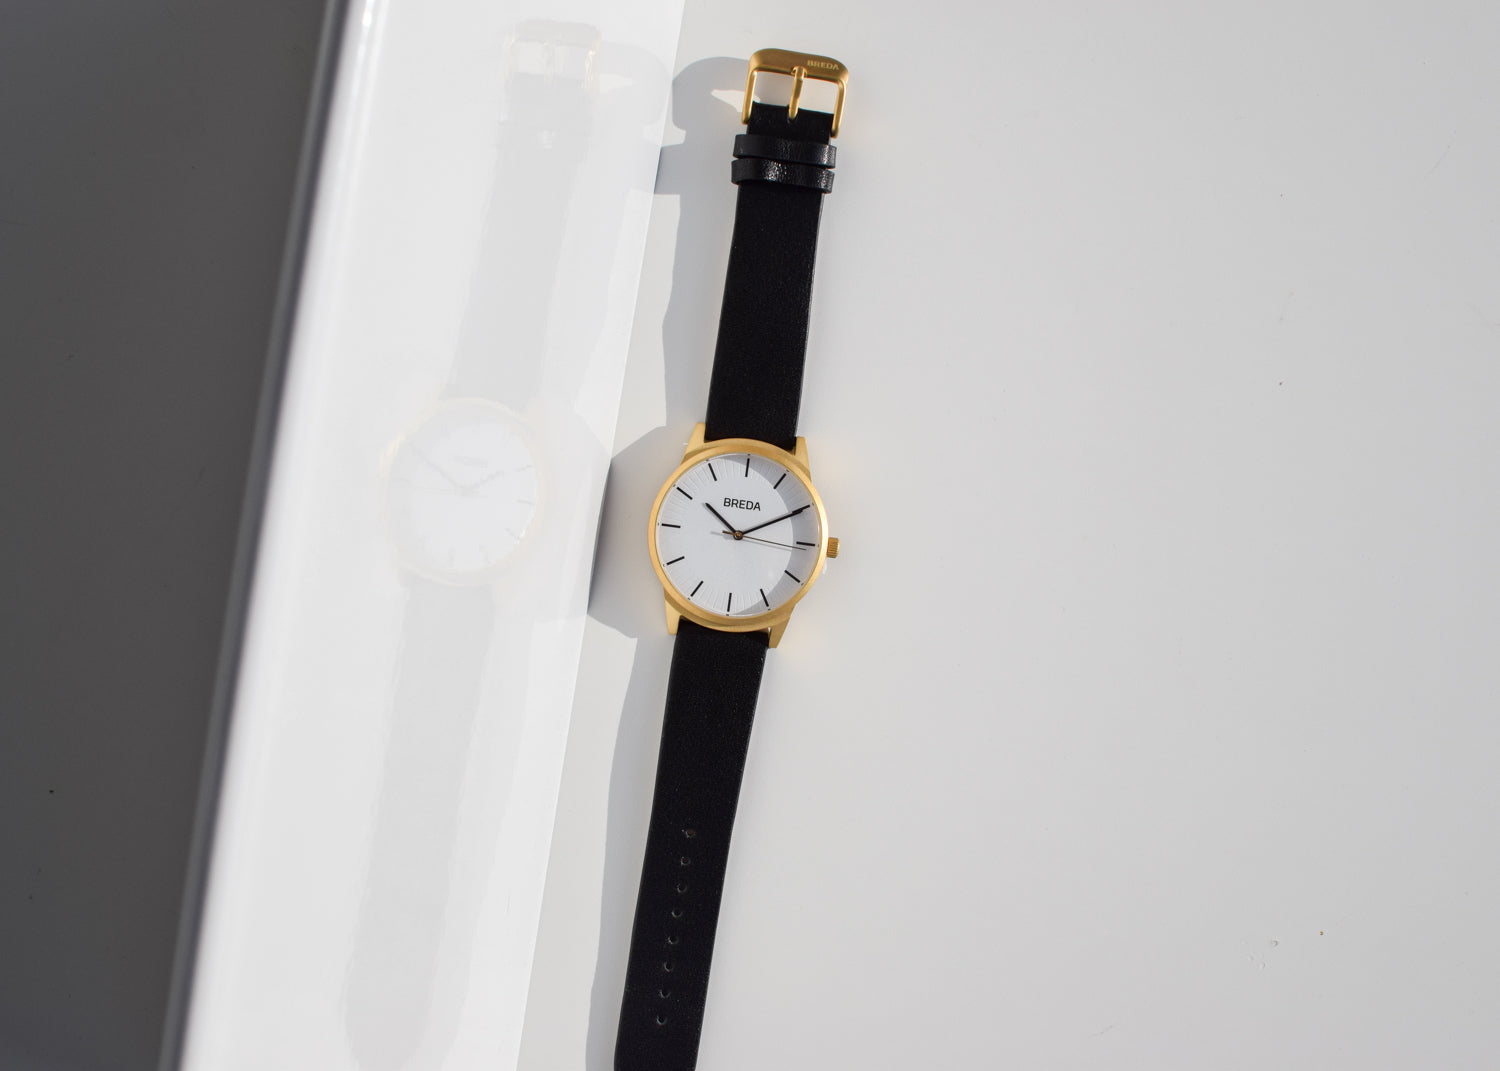 Breda Bresson watch from Commonplace design shop in Milwaukee.